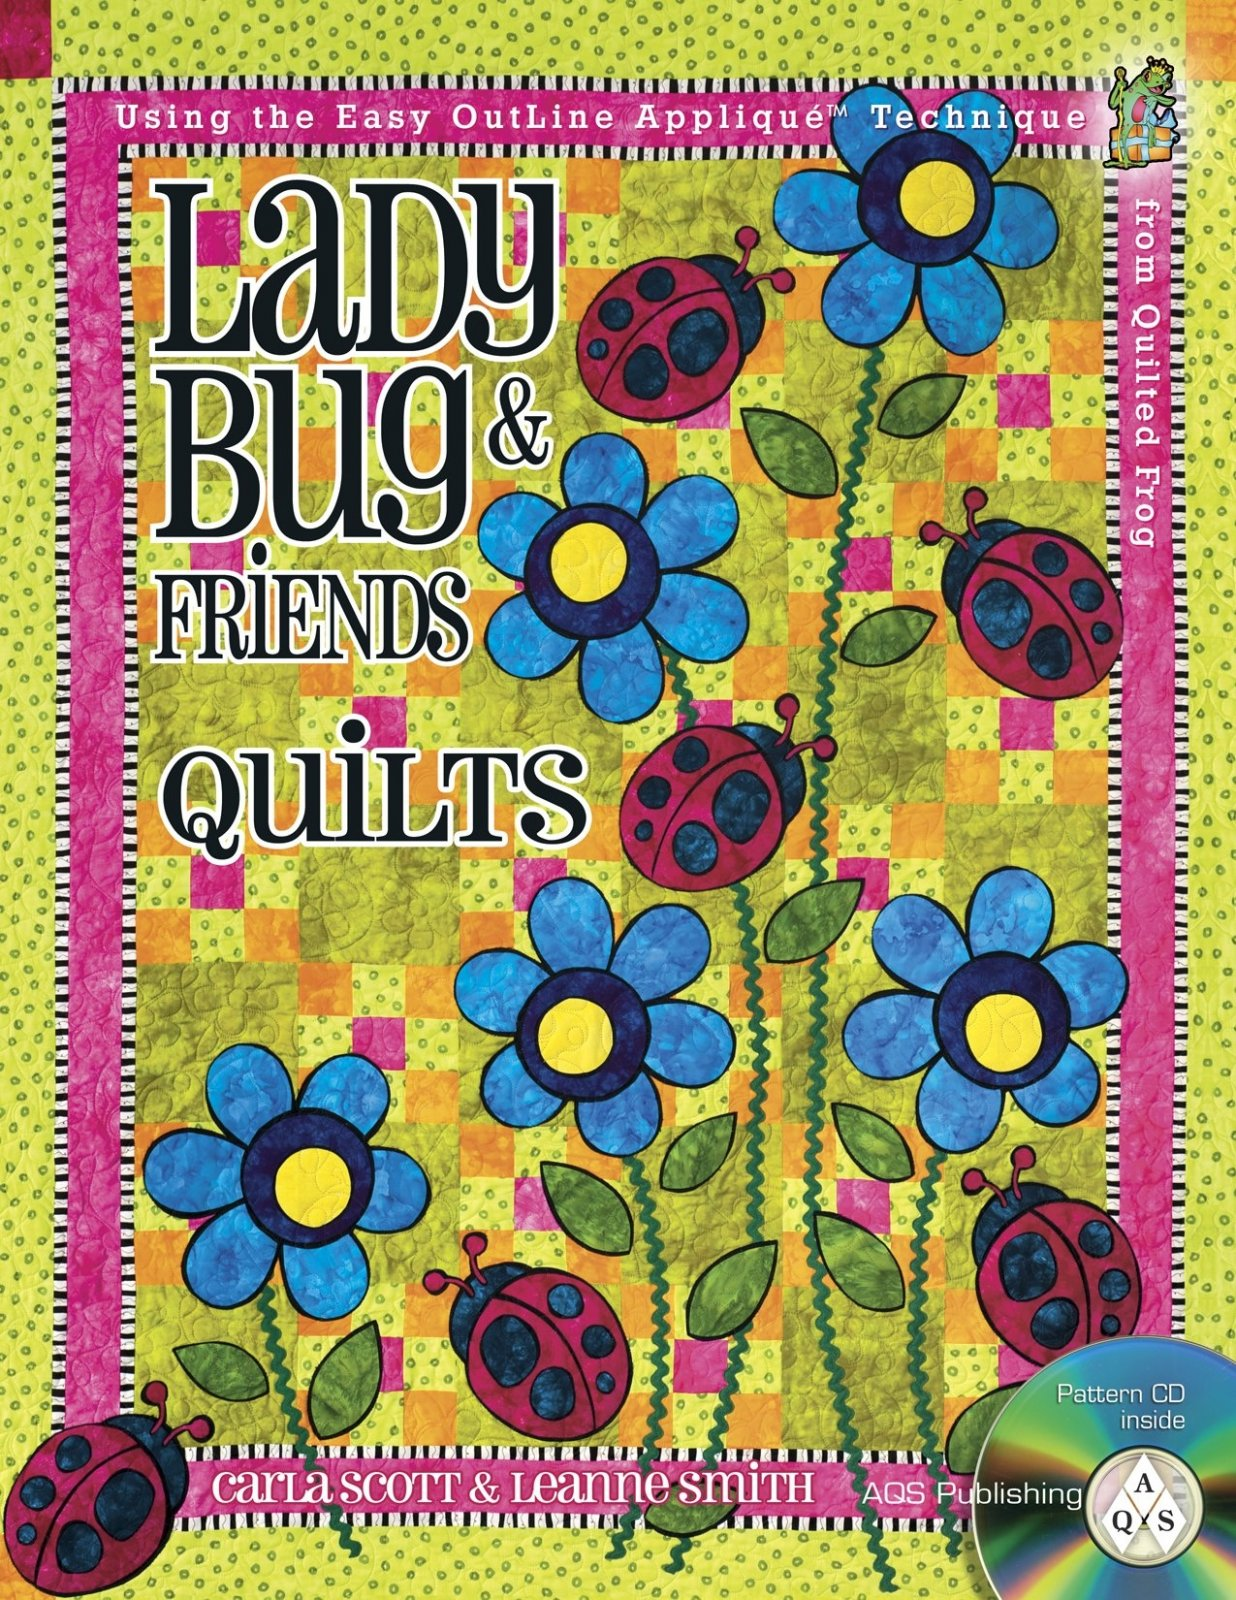 Lady Bug & Friends (includes CD-ROM)